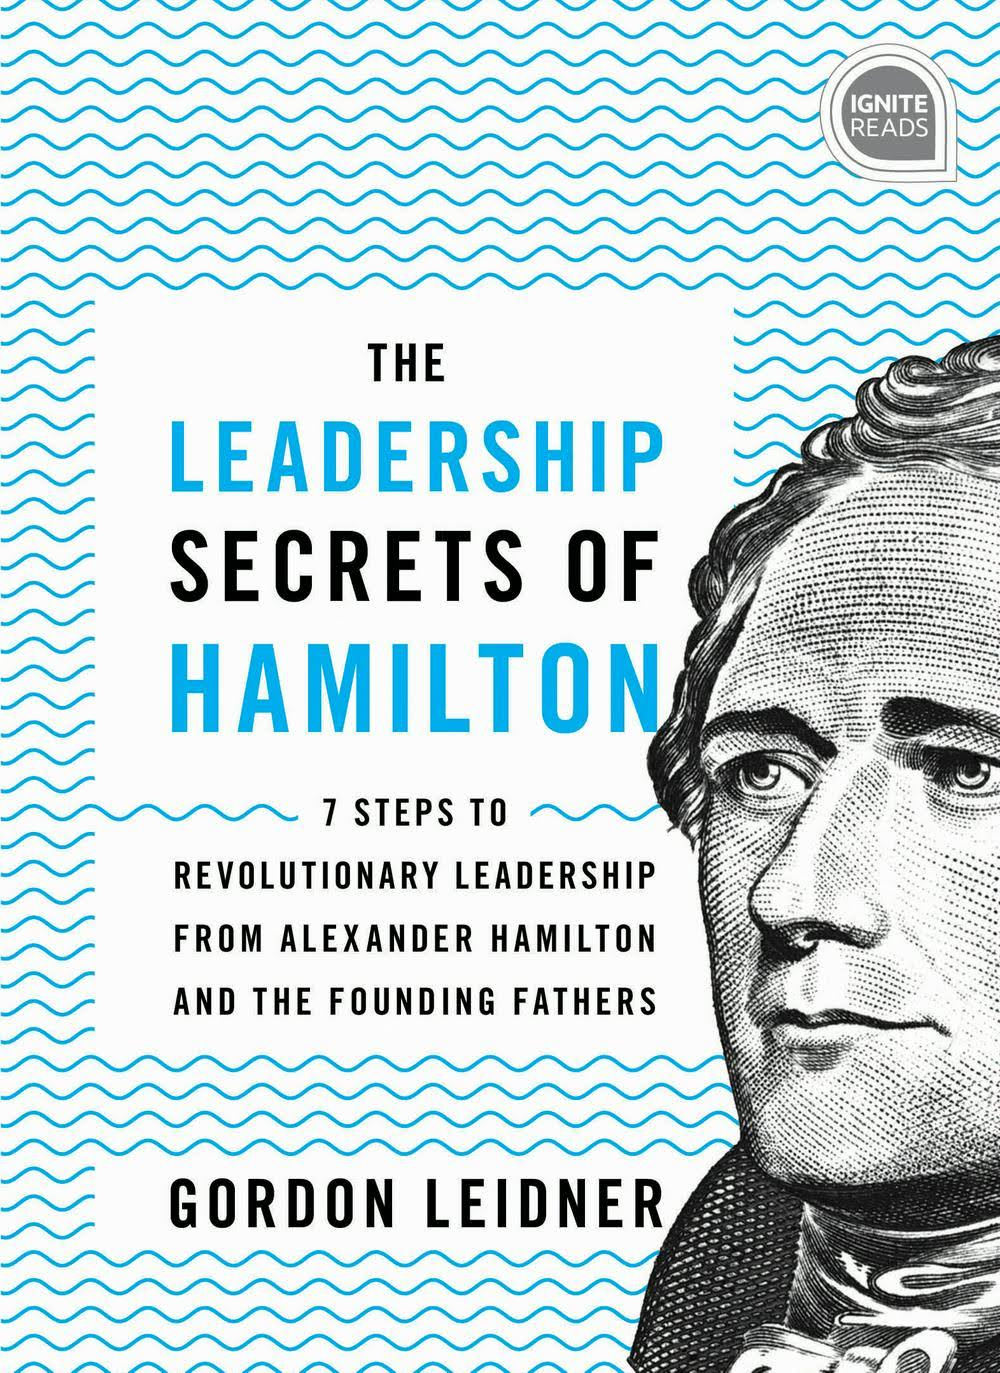 The Leadership Secrets of Hamilton: 7 Steps to Revolutionary Leadership from Alexander Hamilton and the Founding Fathers [Book]